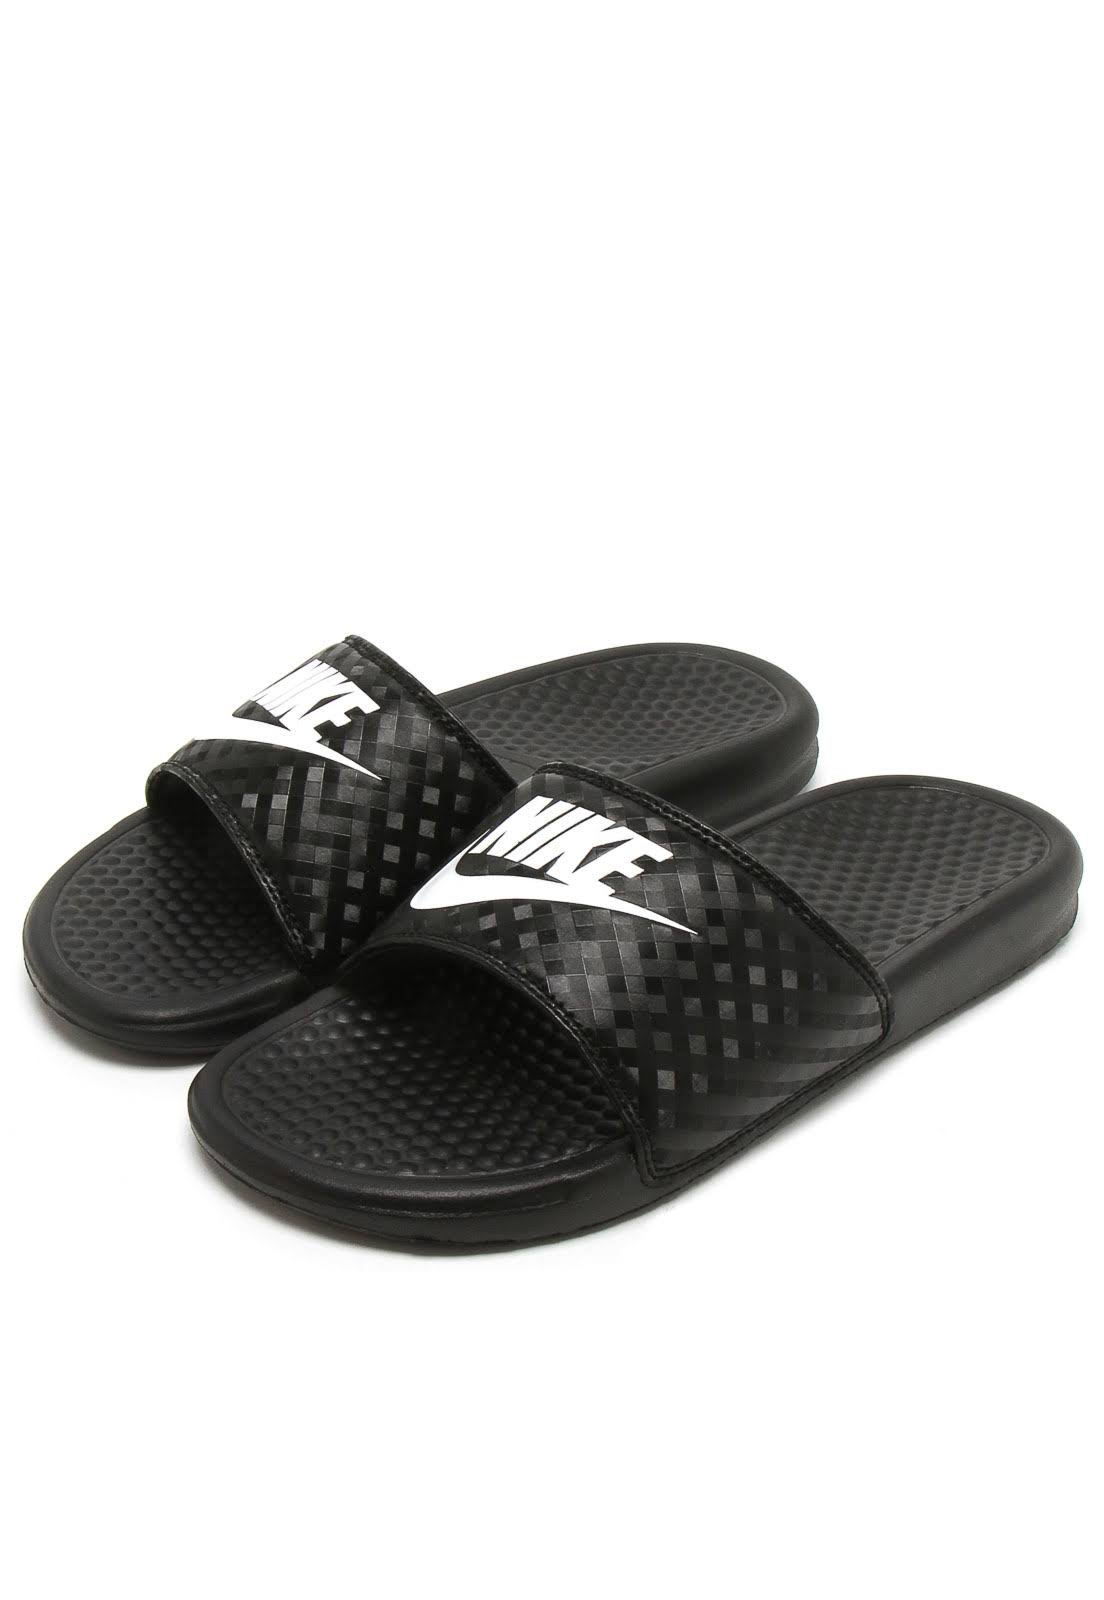 Benassi white Eu Nike Do Black Just It 38 Z8qOxdUq